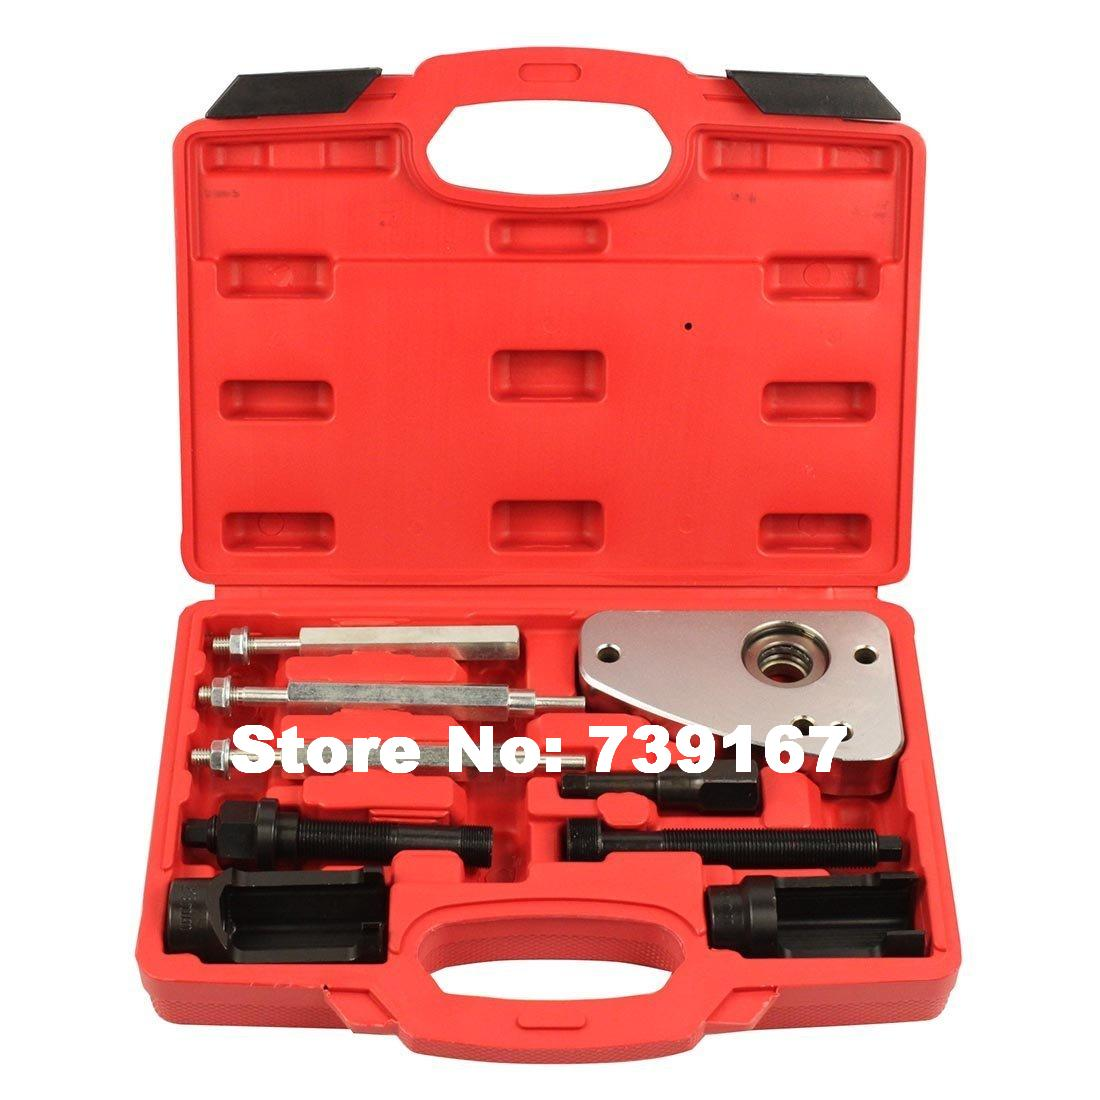 Fuel Injector Removal Tool Kit For Peugeot Citroen 2.0 2.2 HDi 16v ST0123 new style high quality fuel injector tester cleaner tool kit